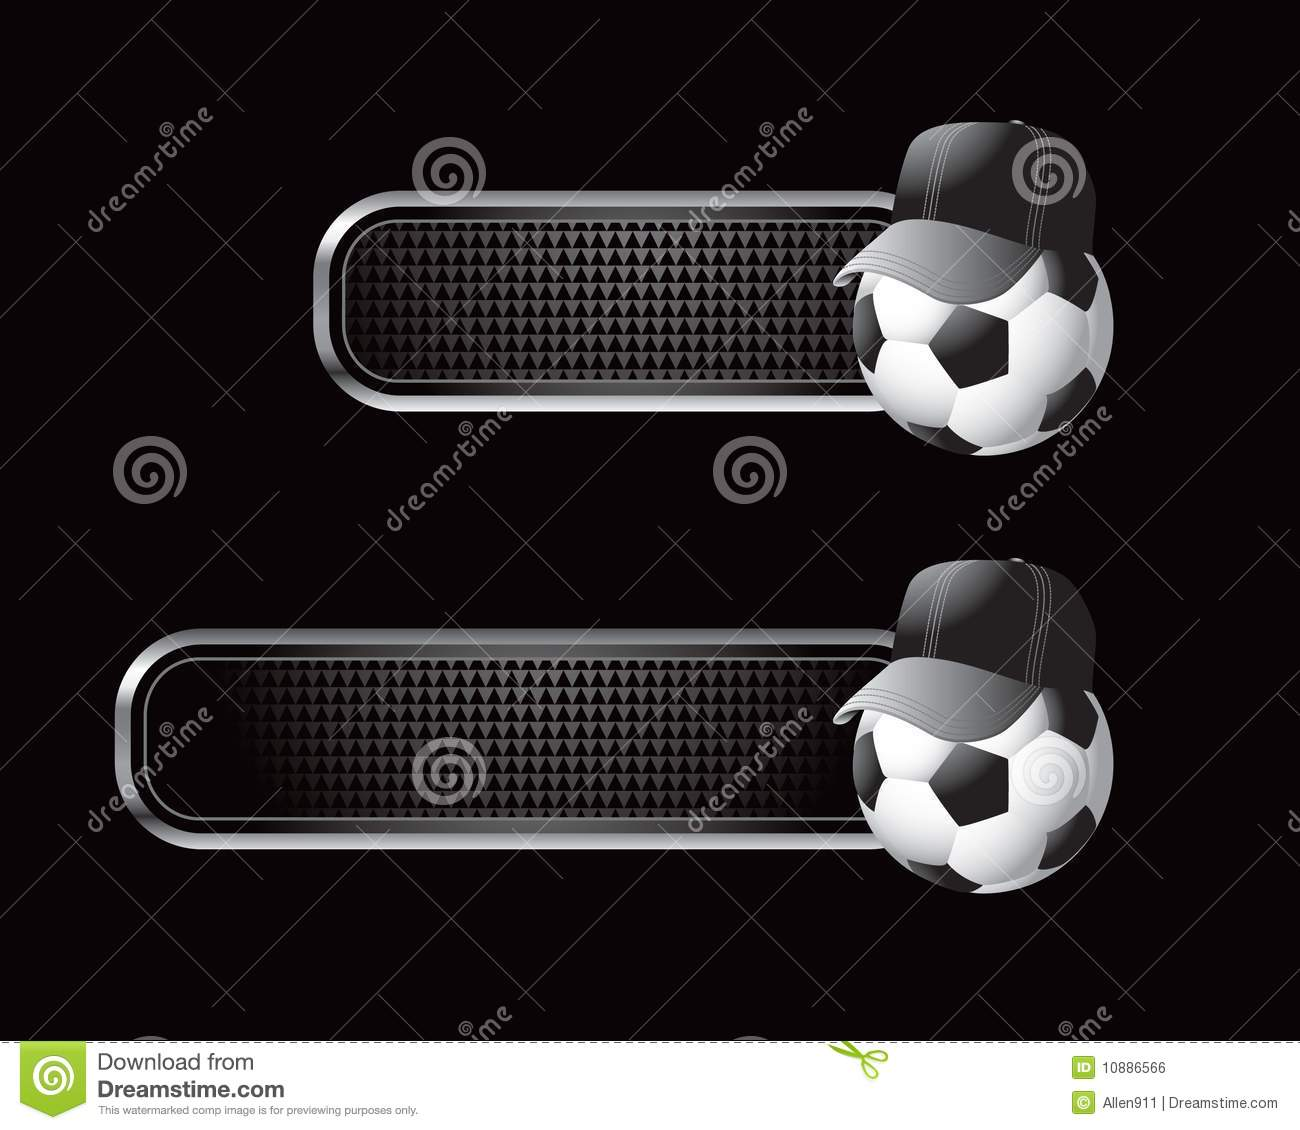 Soccer ball with referee hat on black diamond textured banners. 4c208f811d0